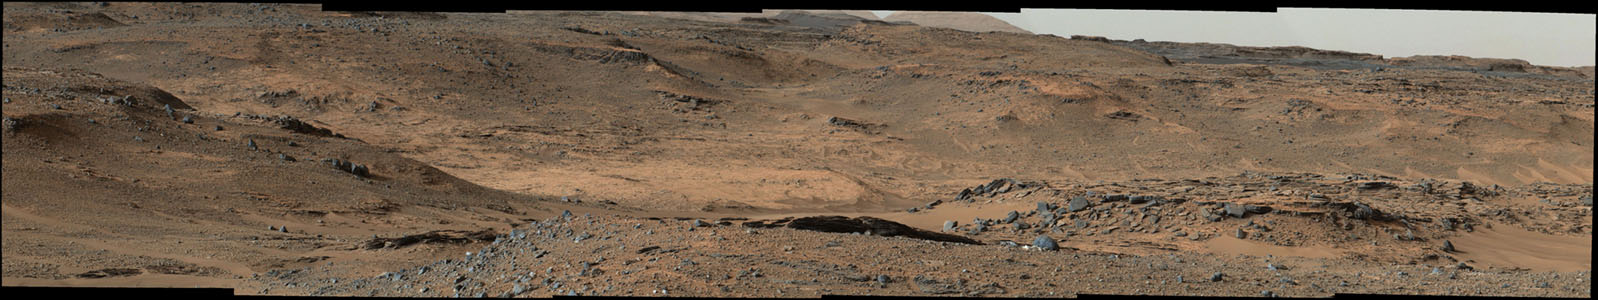 This image from NASA's Mars Curiosity rover shows the 'Amargosa Valley,' on the slopes leading up to Mount Sharp on Mars. The rover is headed toward the 'Pahrump Hills' outcrop.